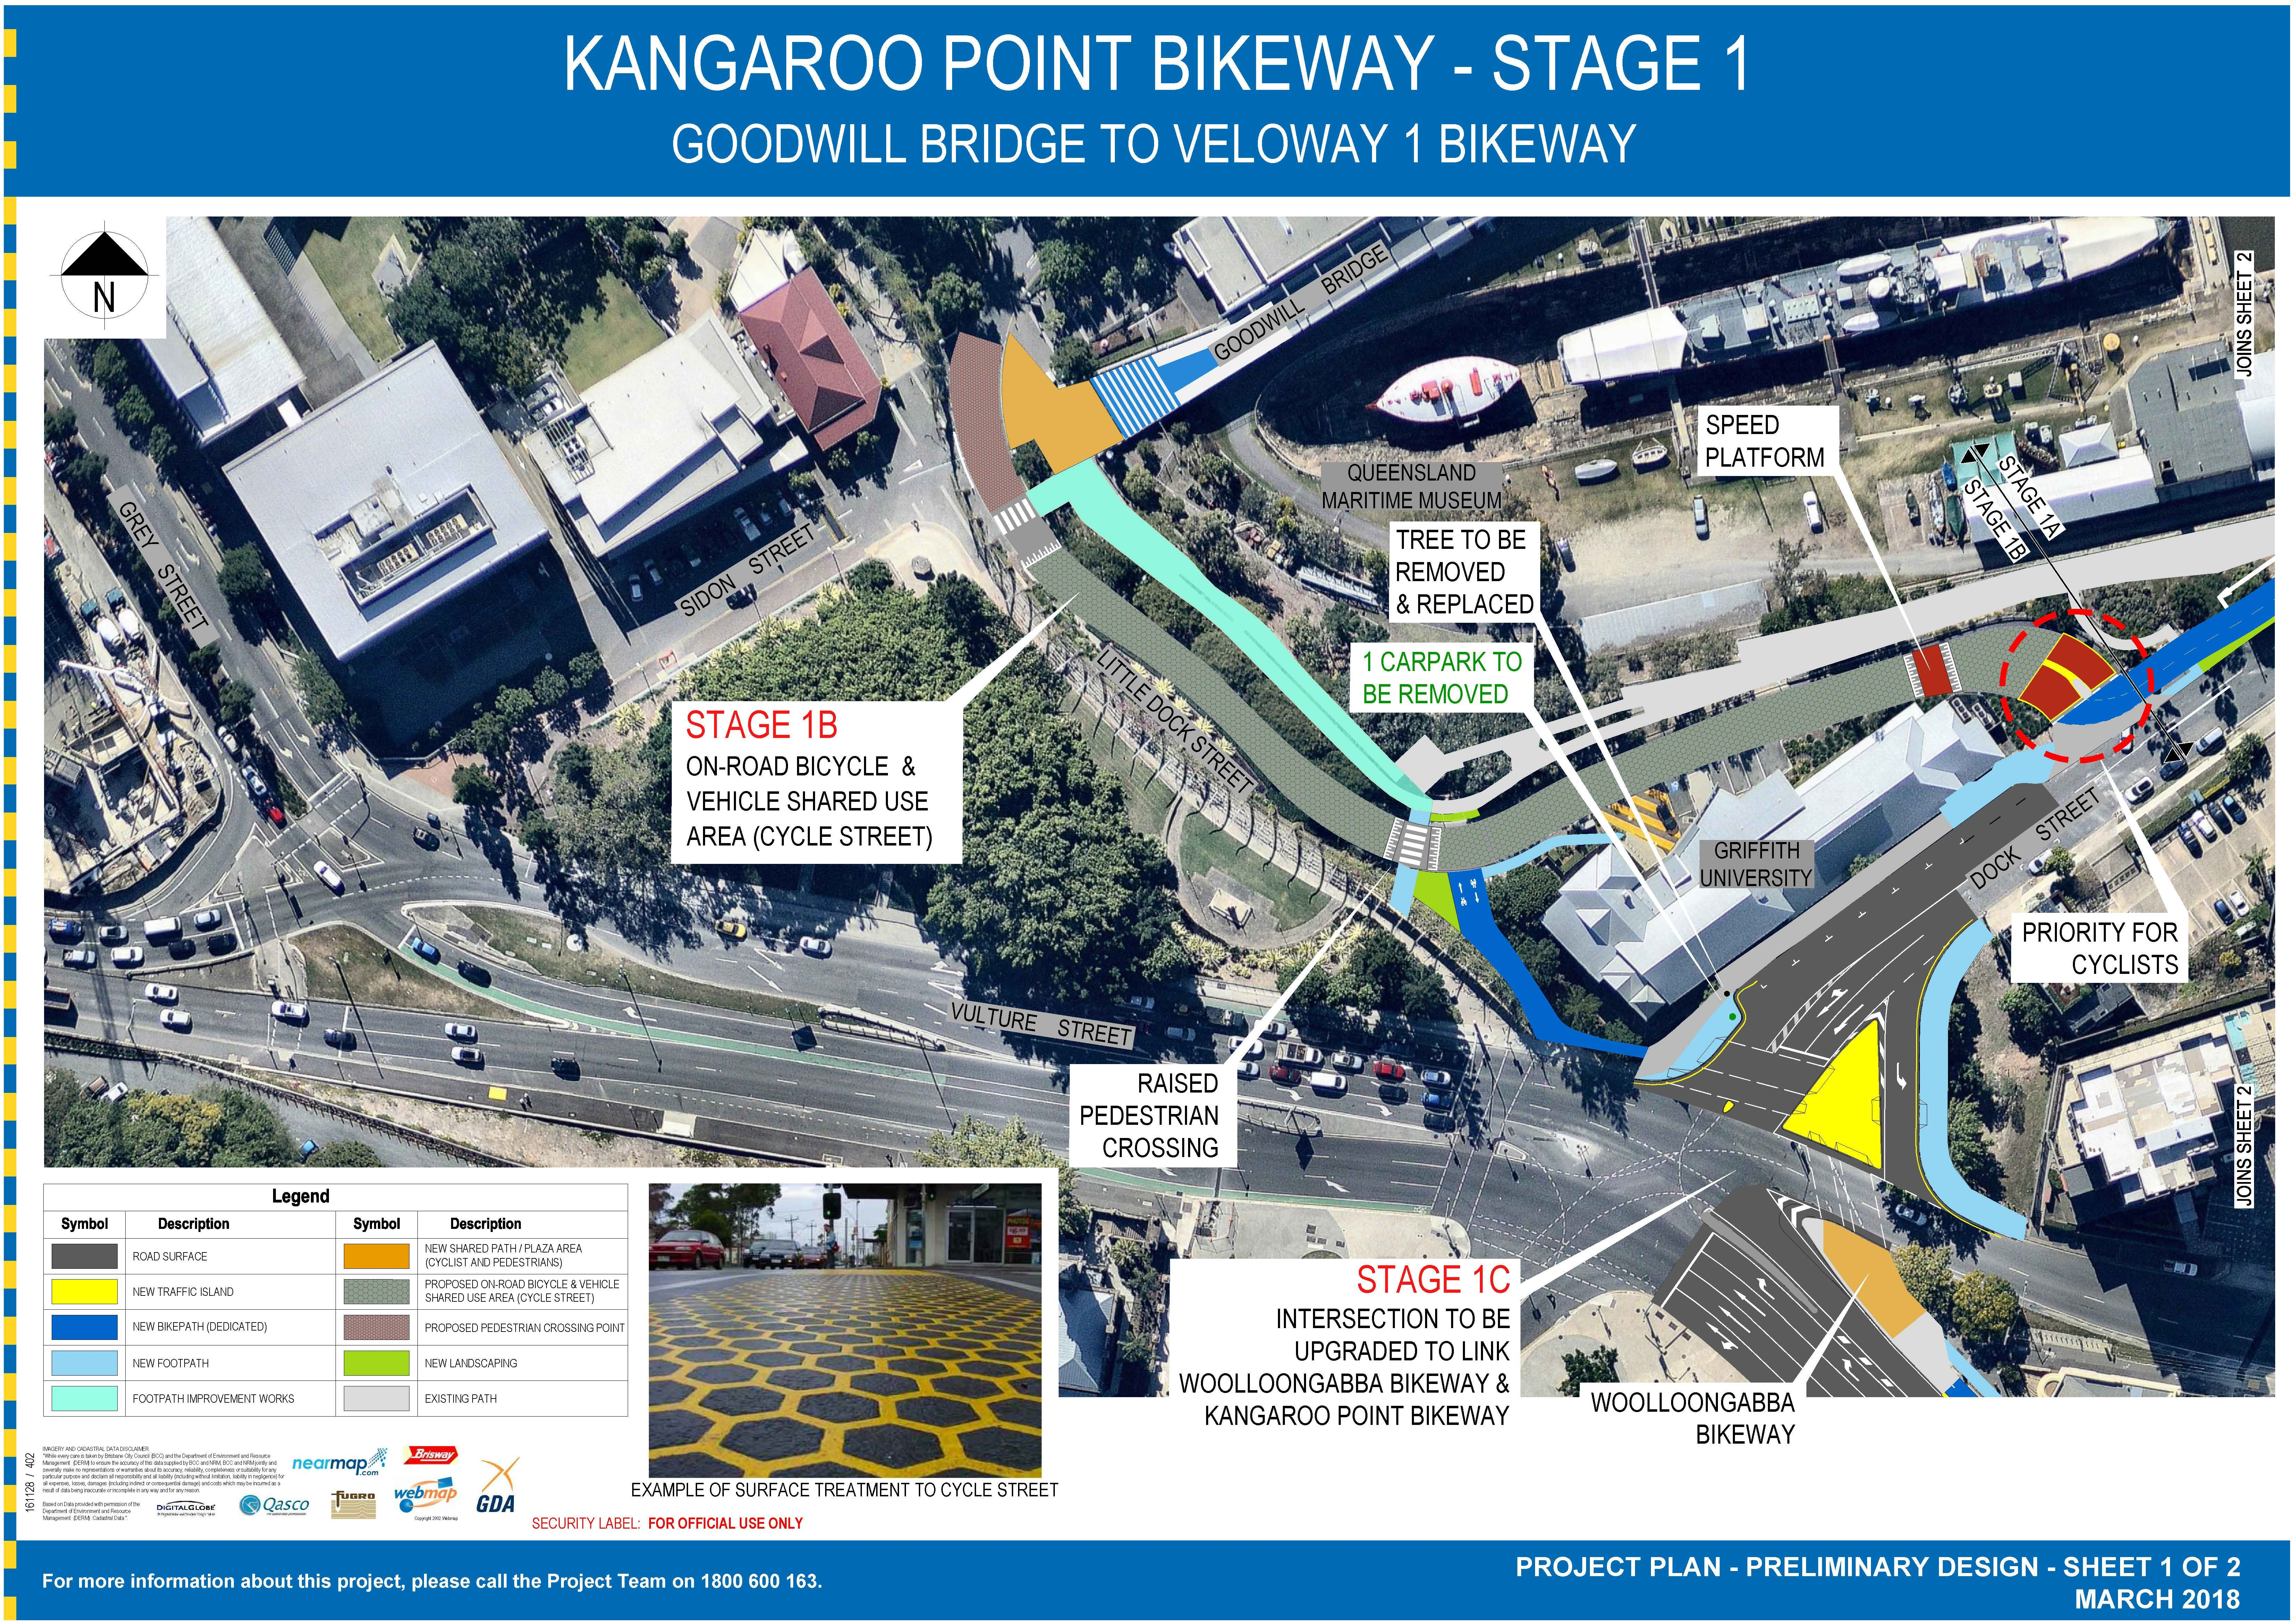 BKWY - PROJECT PLAN STAGE 1  - KANGAROO POINT BIKEWAY